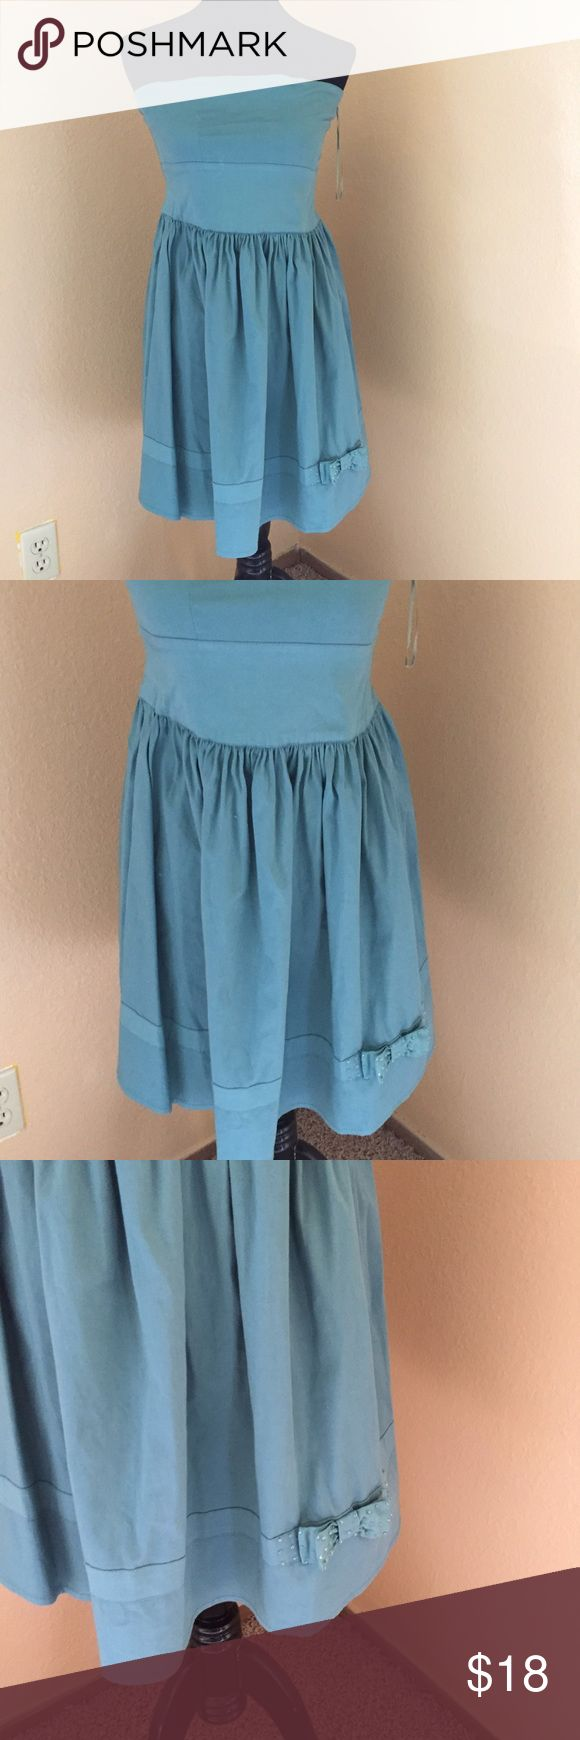 Cute strapless dress Juniors size 12 runs a little small Dresses Strapless